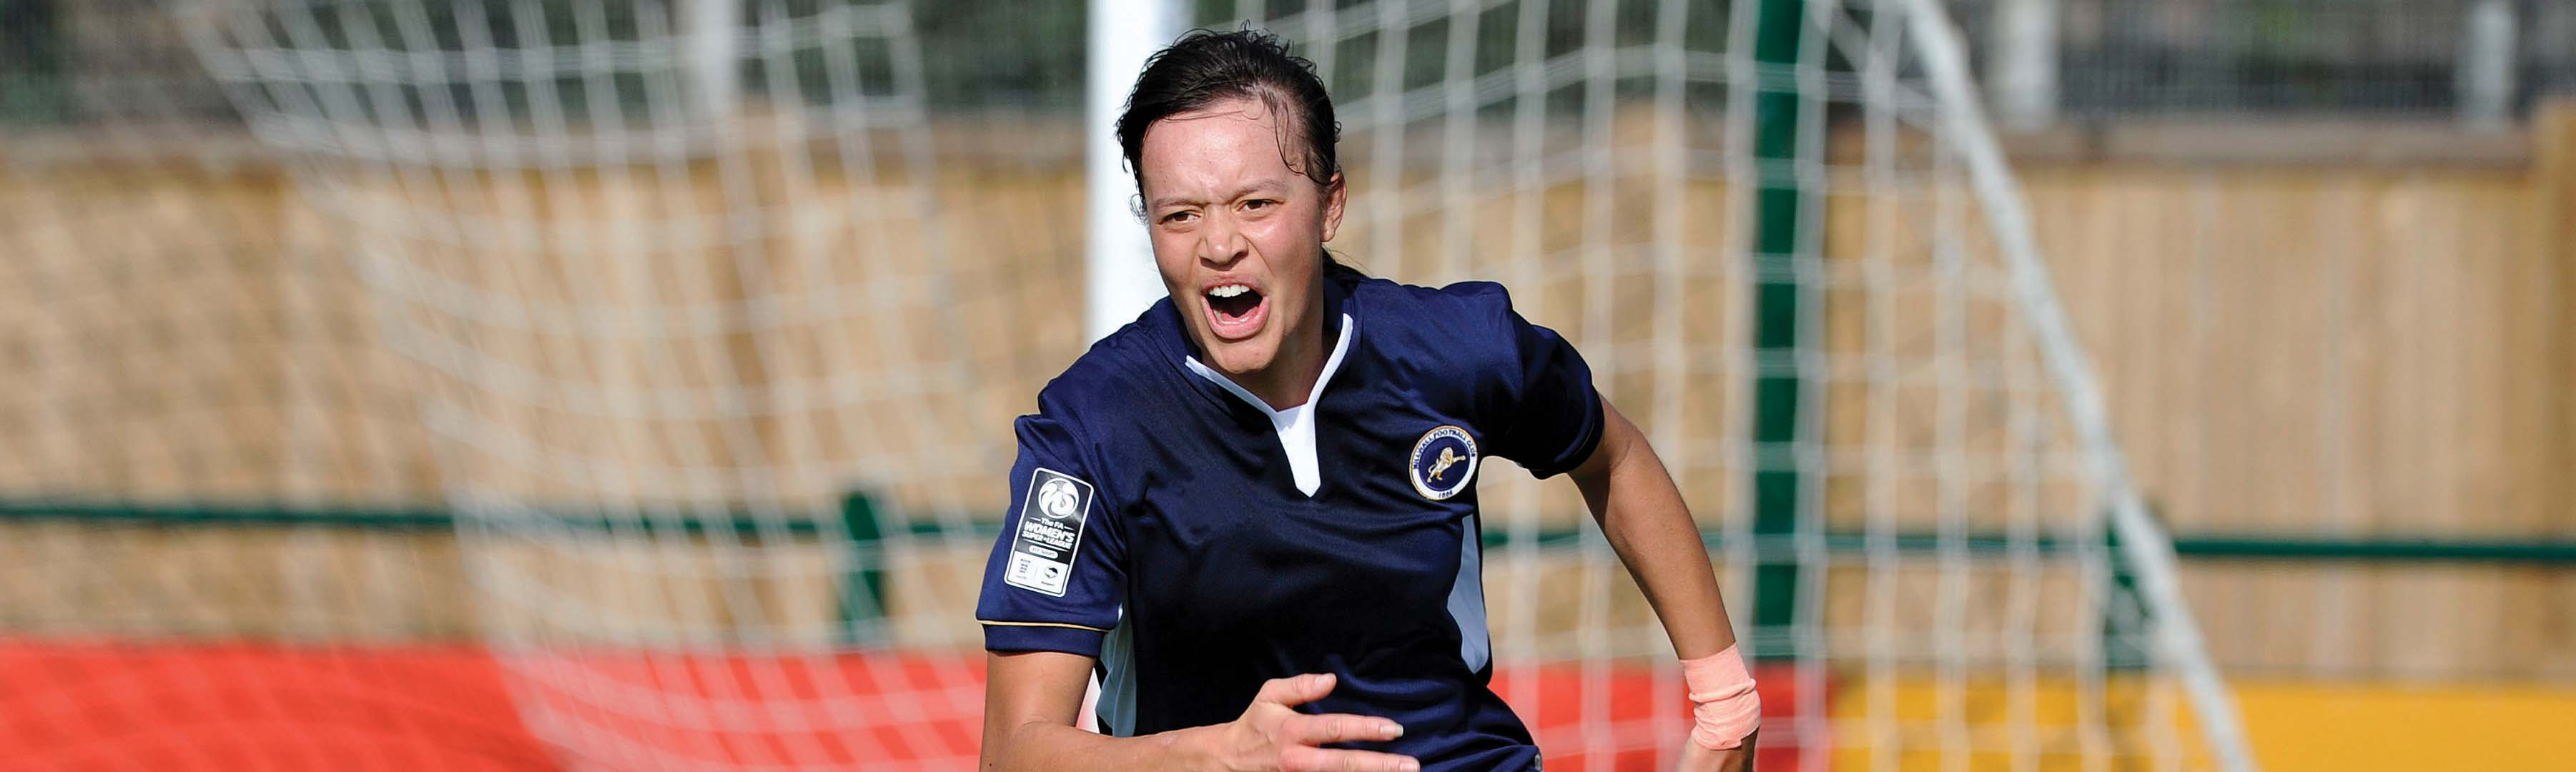 Millwall football Academy for 16-18 year olds run in partnership with SCL